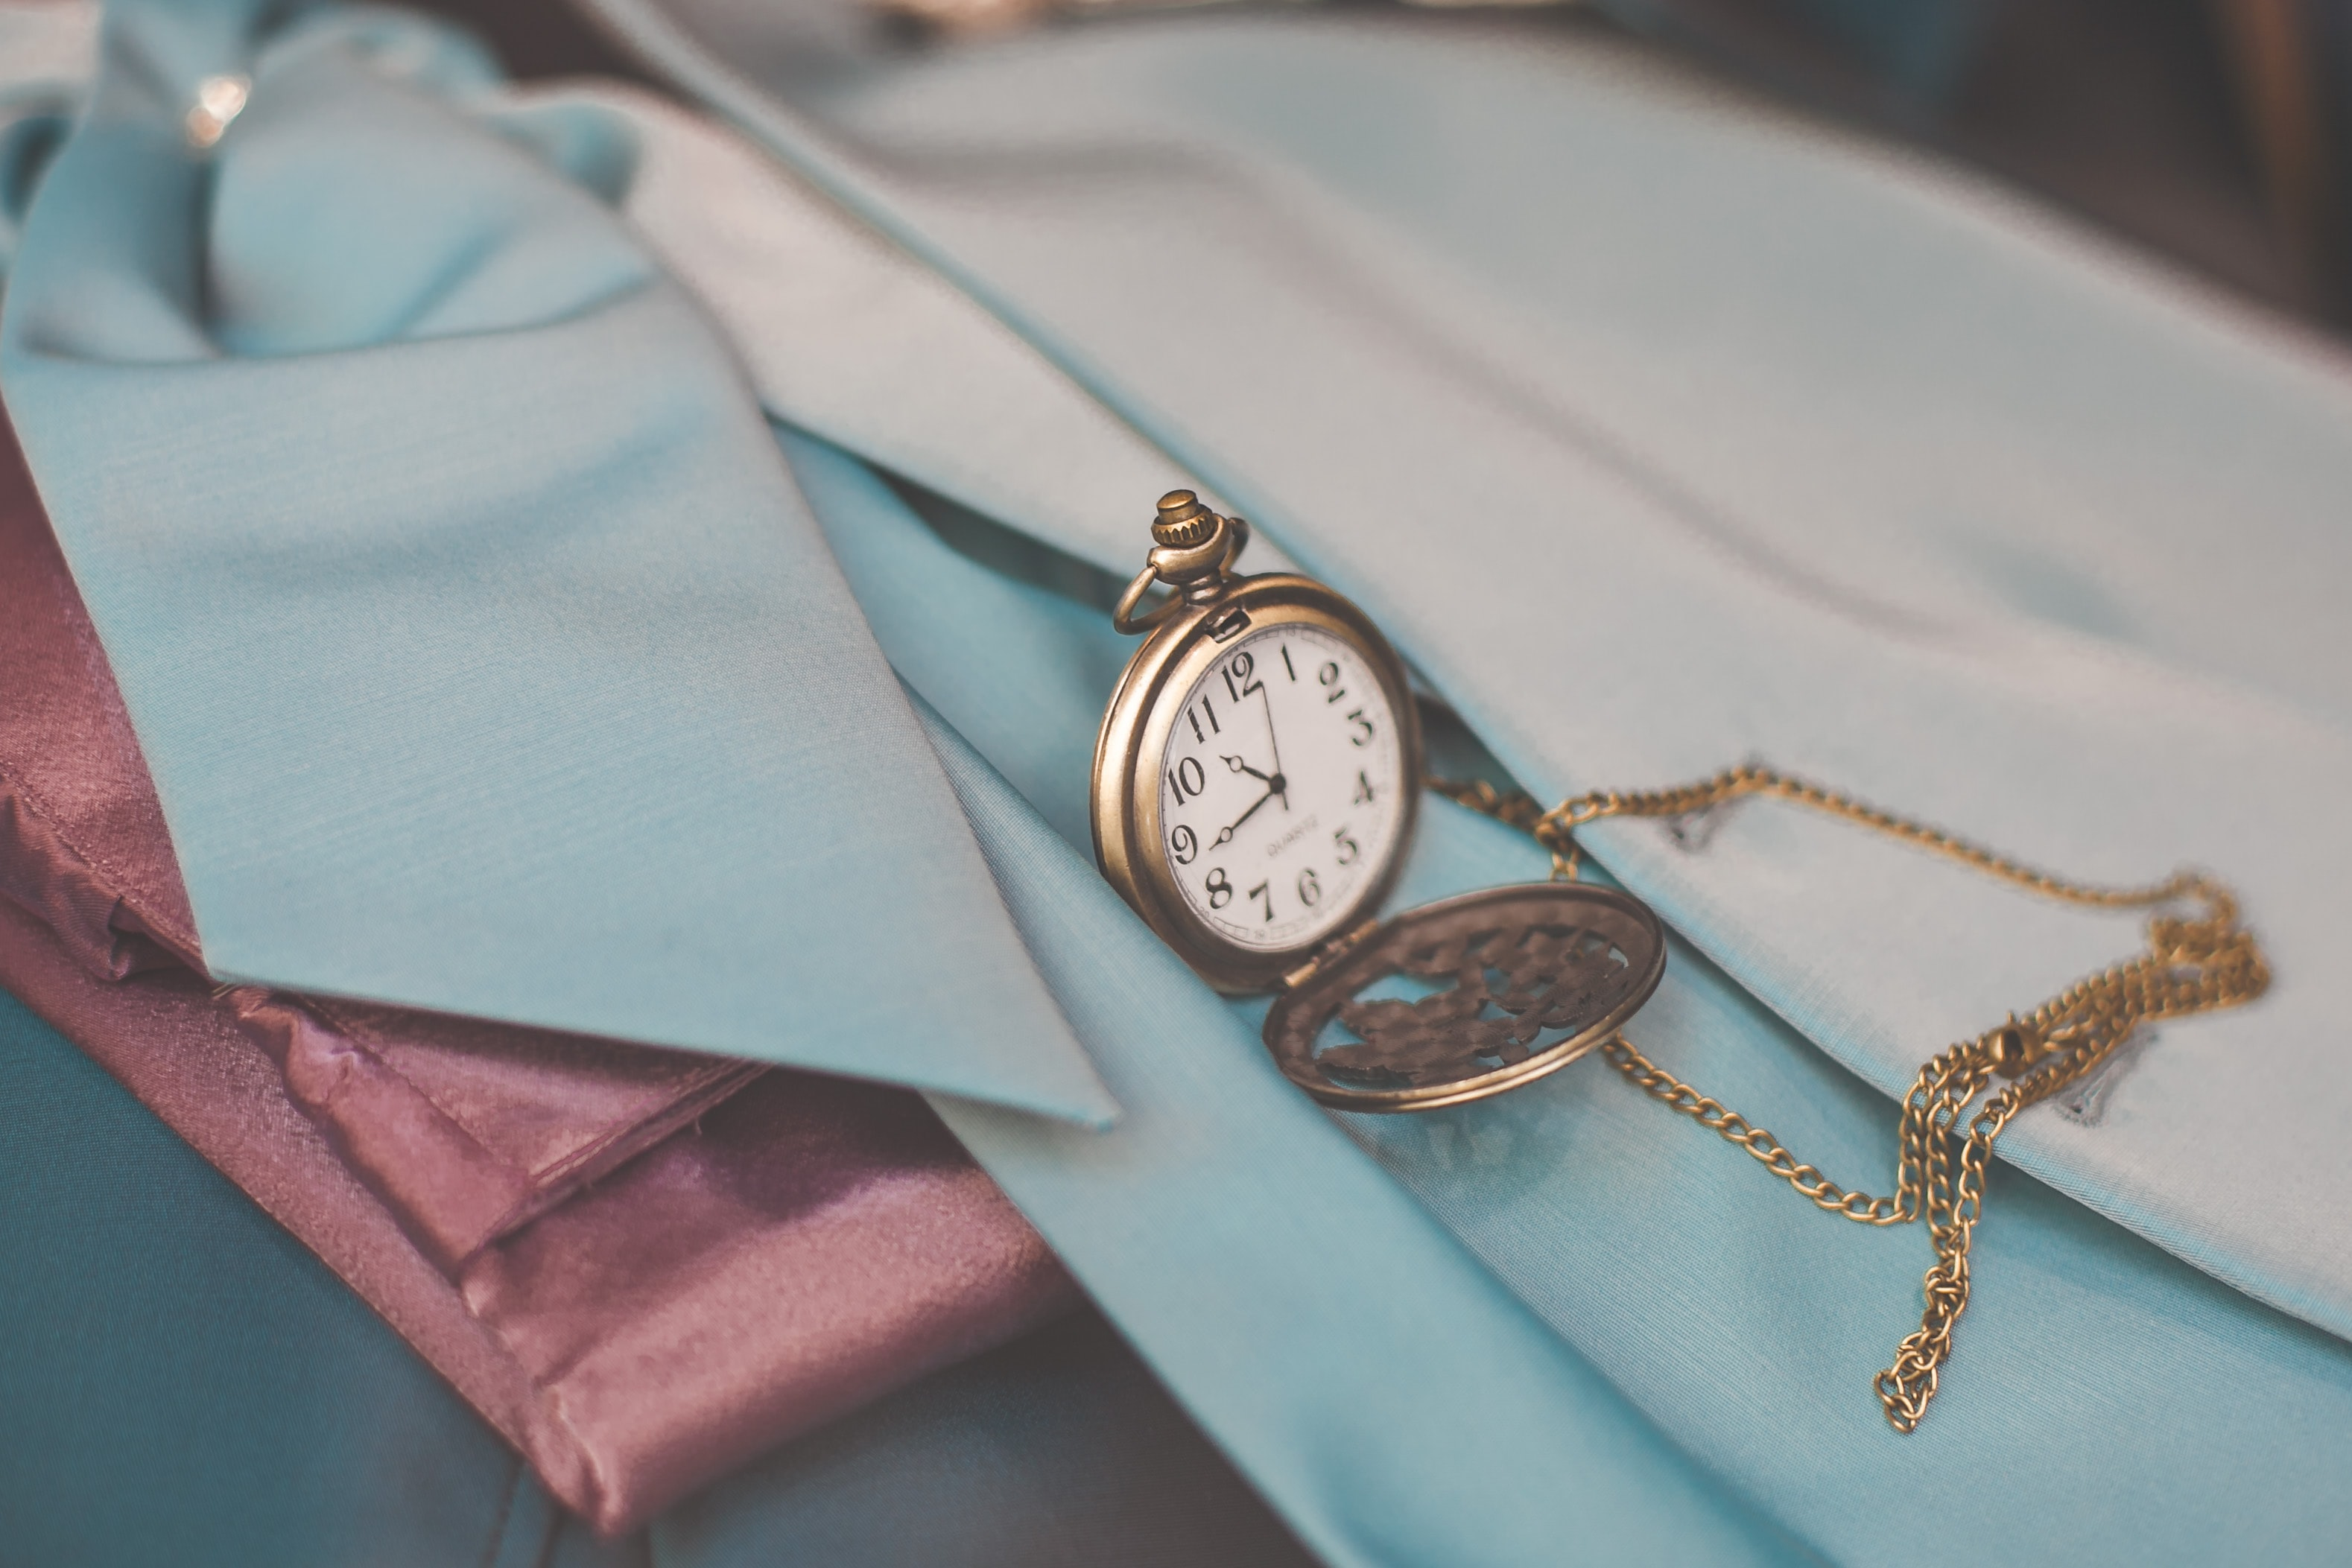 An antique pocket watch on a scarf